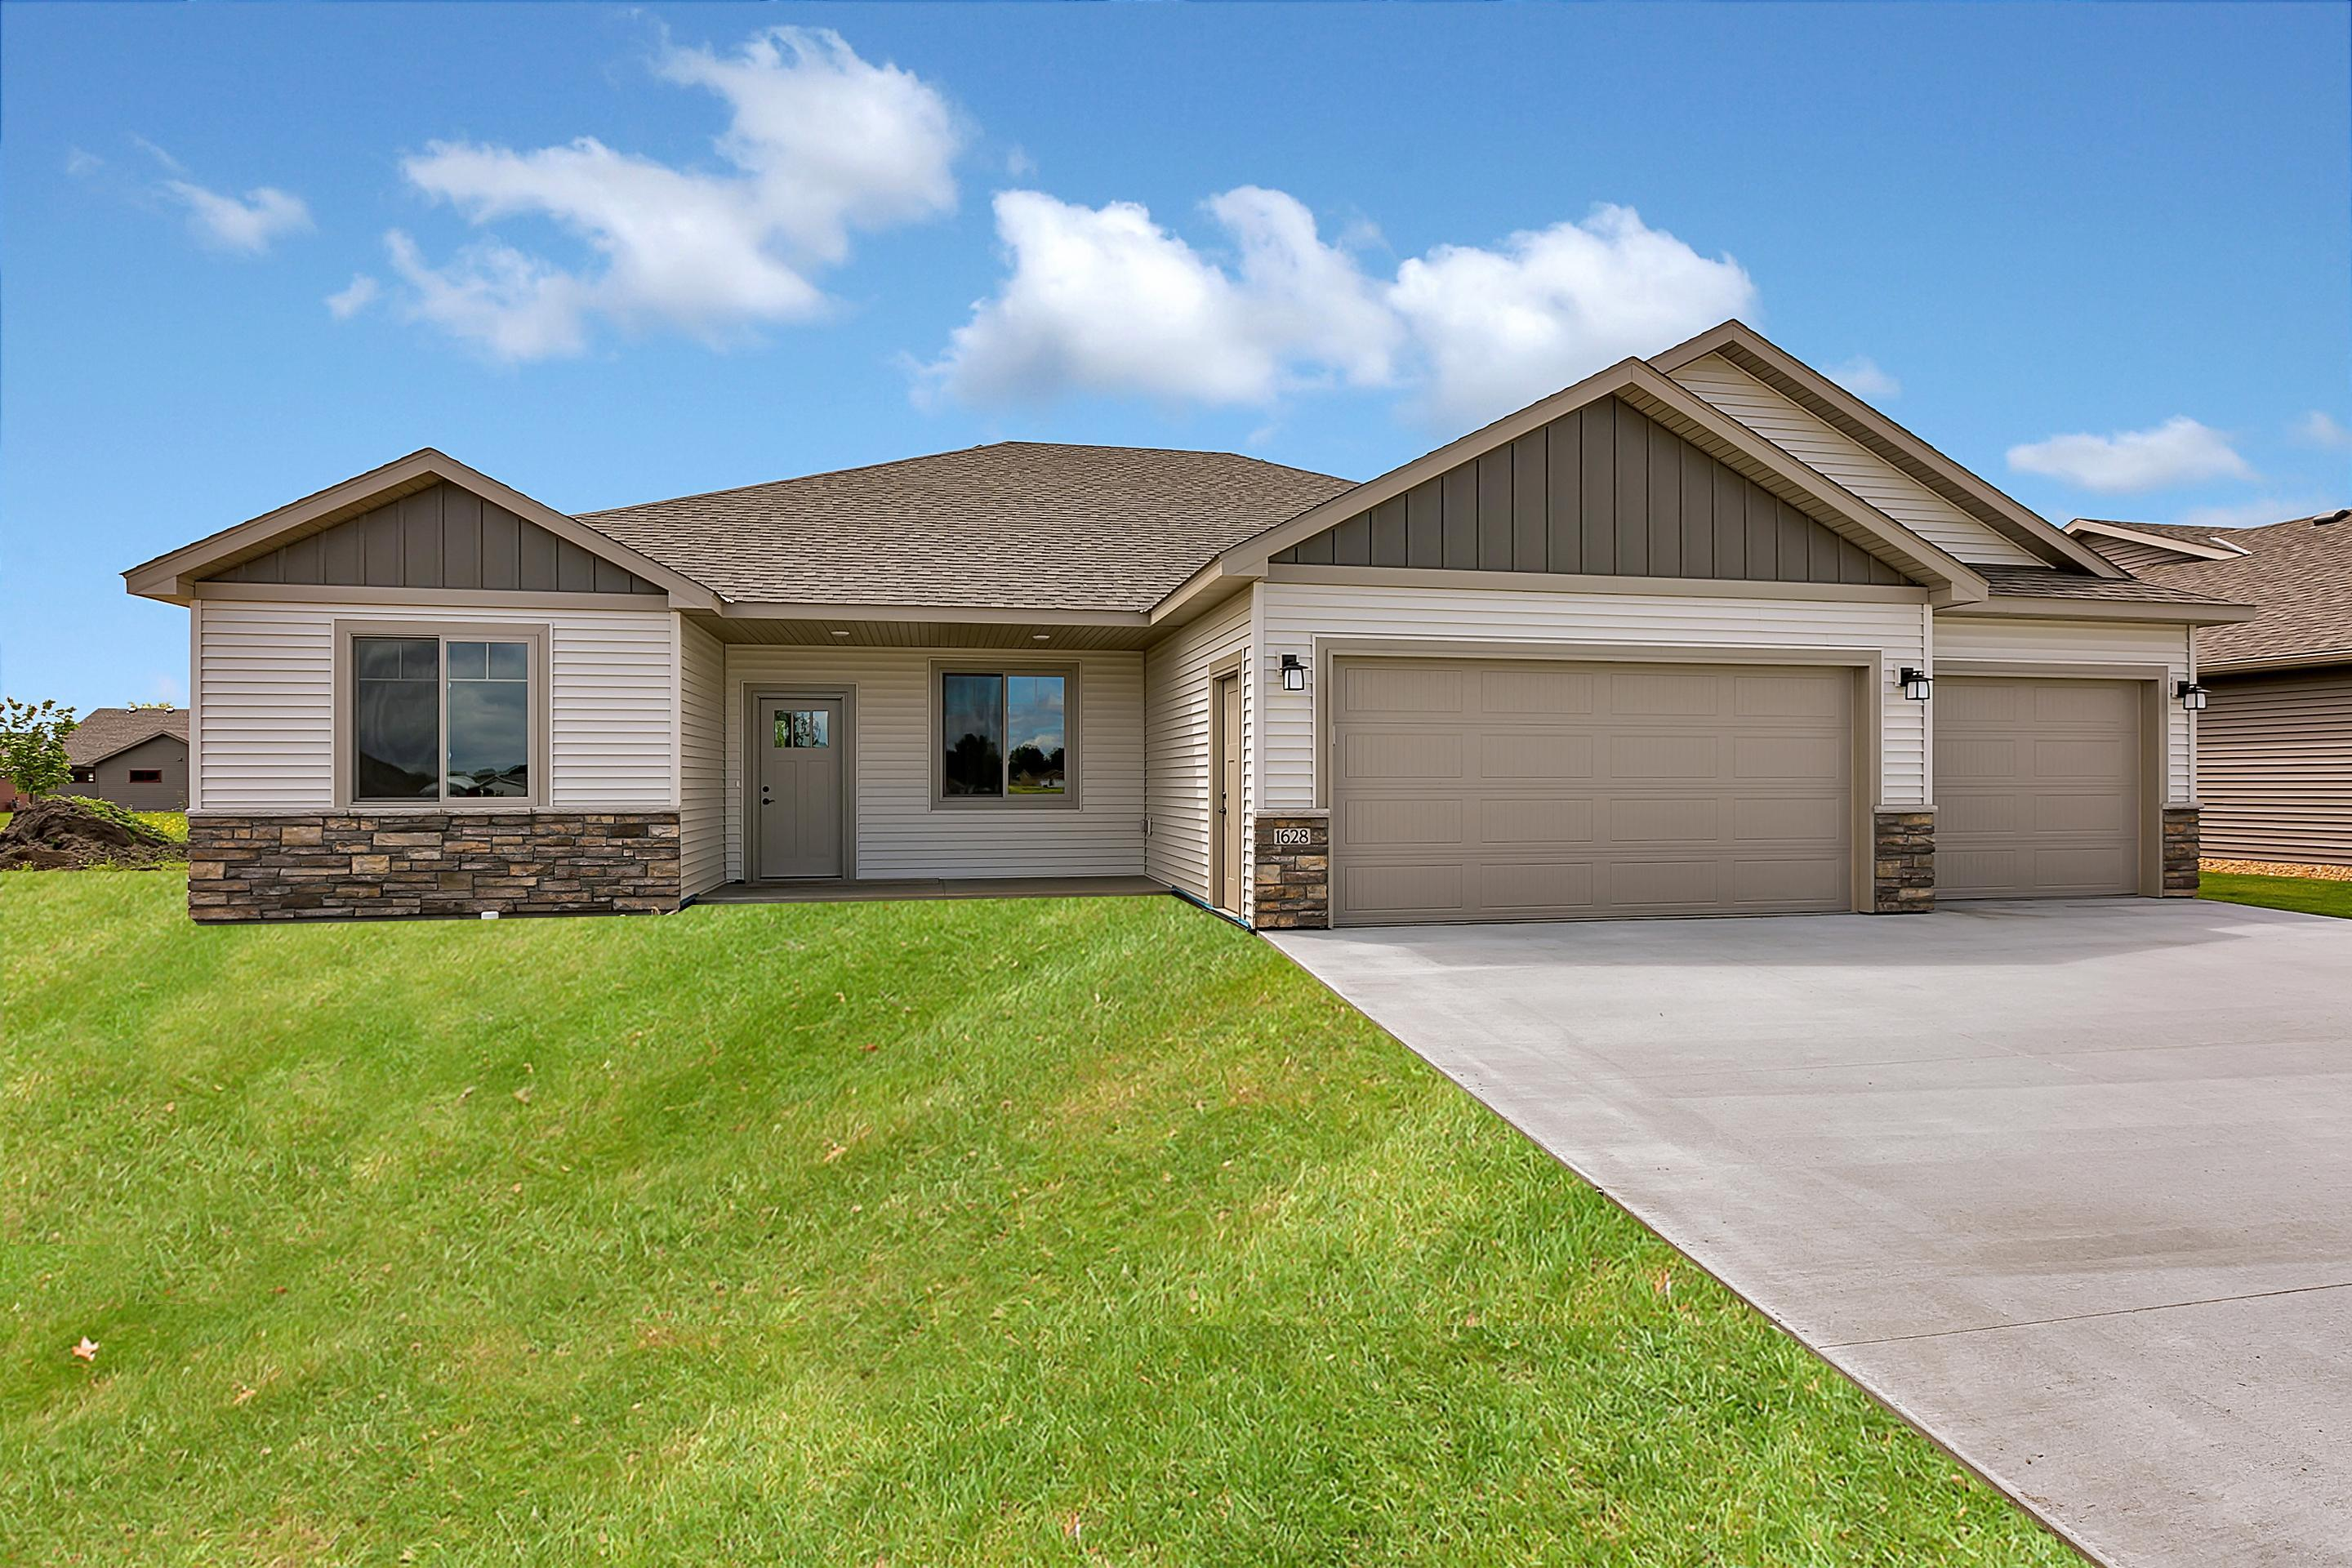 COMING SOON!  Under Construction!  3 BR, 2 BA patio home built by Woodland Homes. Live-in design w/3' wide doors, 9' ceilings, custom oak cabinetry, master suite with walk-in closet and tile roll-in shower, in-floor heat, electric fireplace with stone surround, granite counters & corner walk-in pantry in kitchen, Andersen windows, covered front and rear concrete patios. Association takes care of lawn maintenance & snow removal!